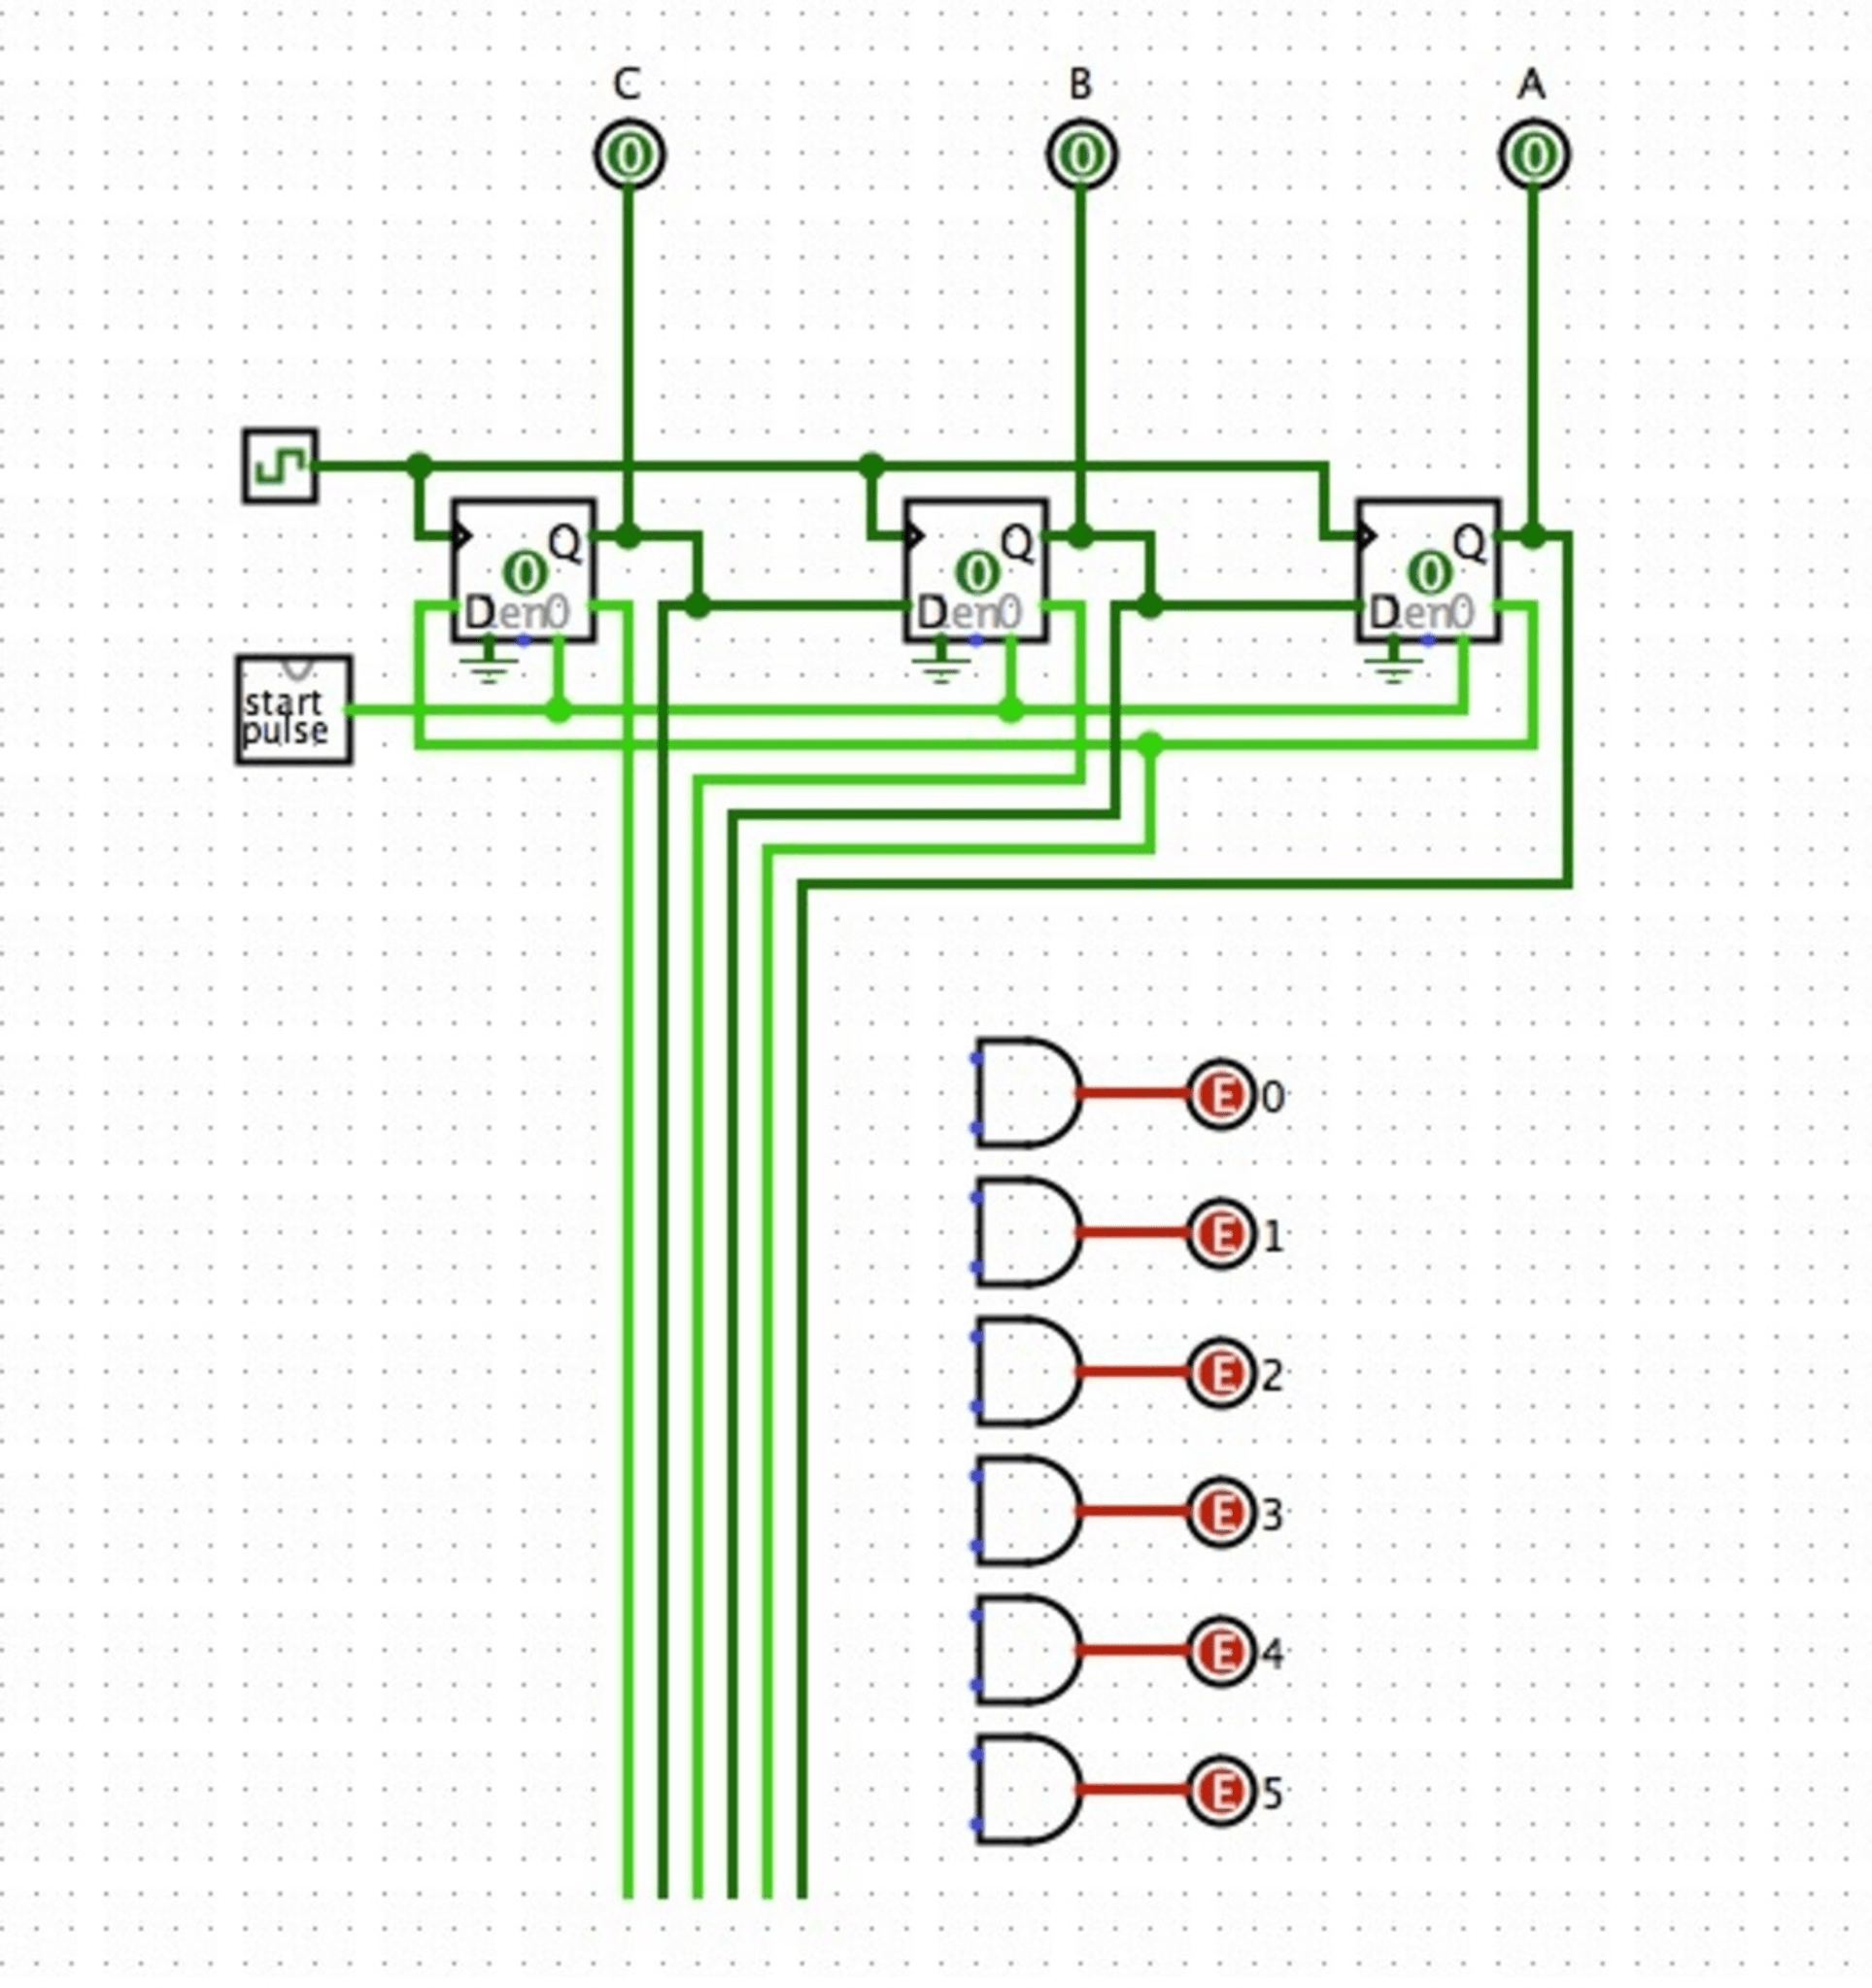 hight resolution of question this is a specialized counter configuration known as a johnson counter as configured this is a 3 bit mod 6 counter like the ring counter